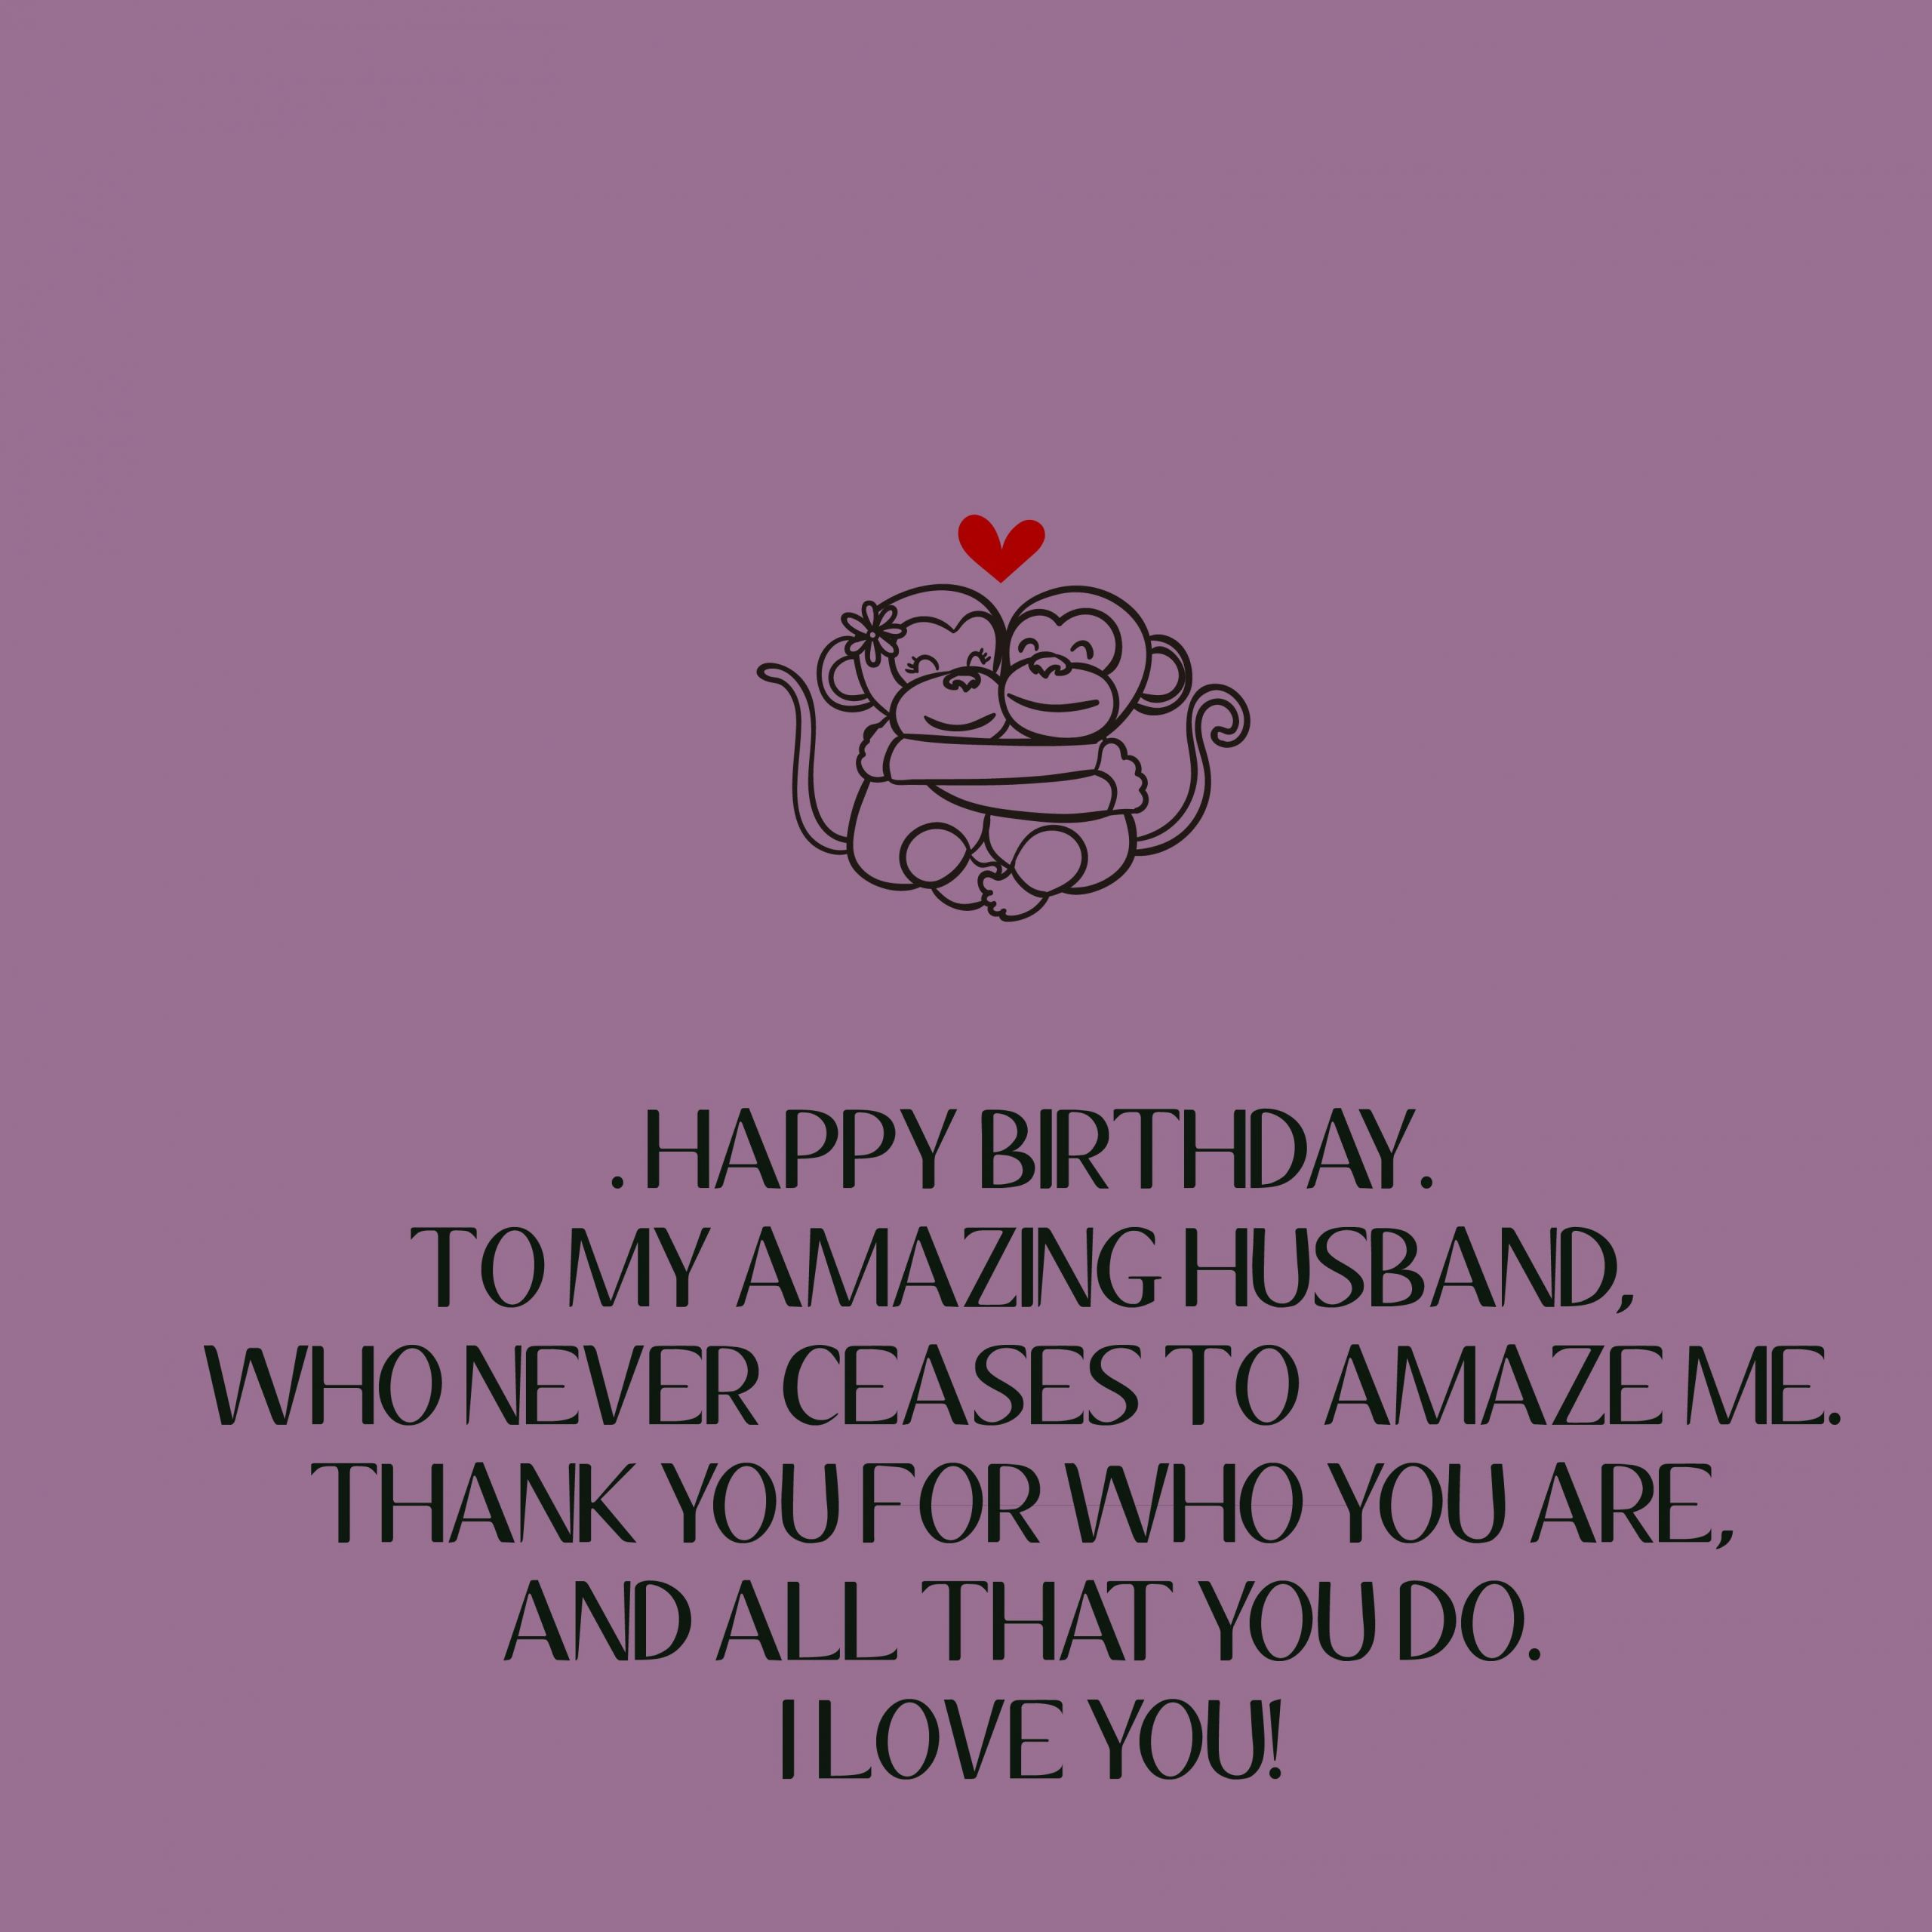 Best Birthday Wishes For Husband  200 Happy Birthday Husband Wishes – Top Happy Birthday Wishes